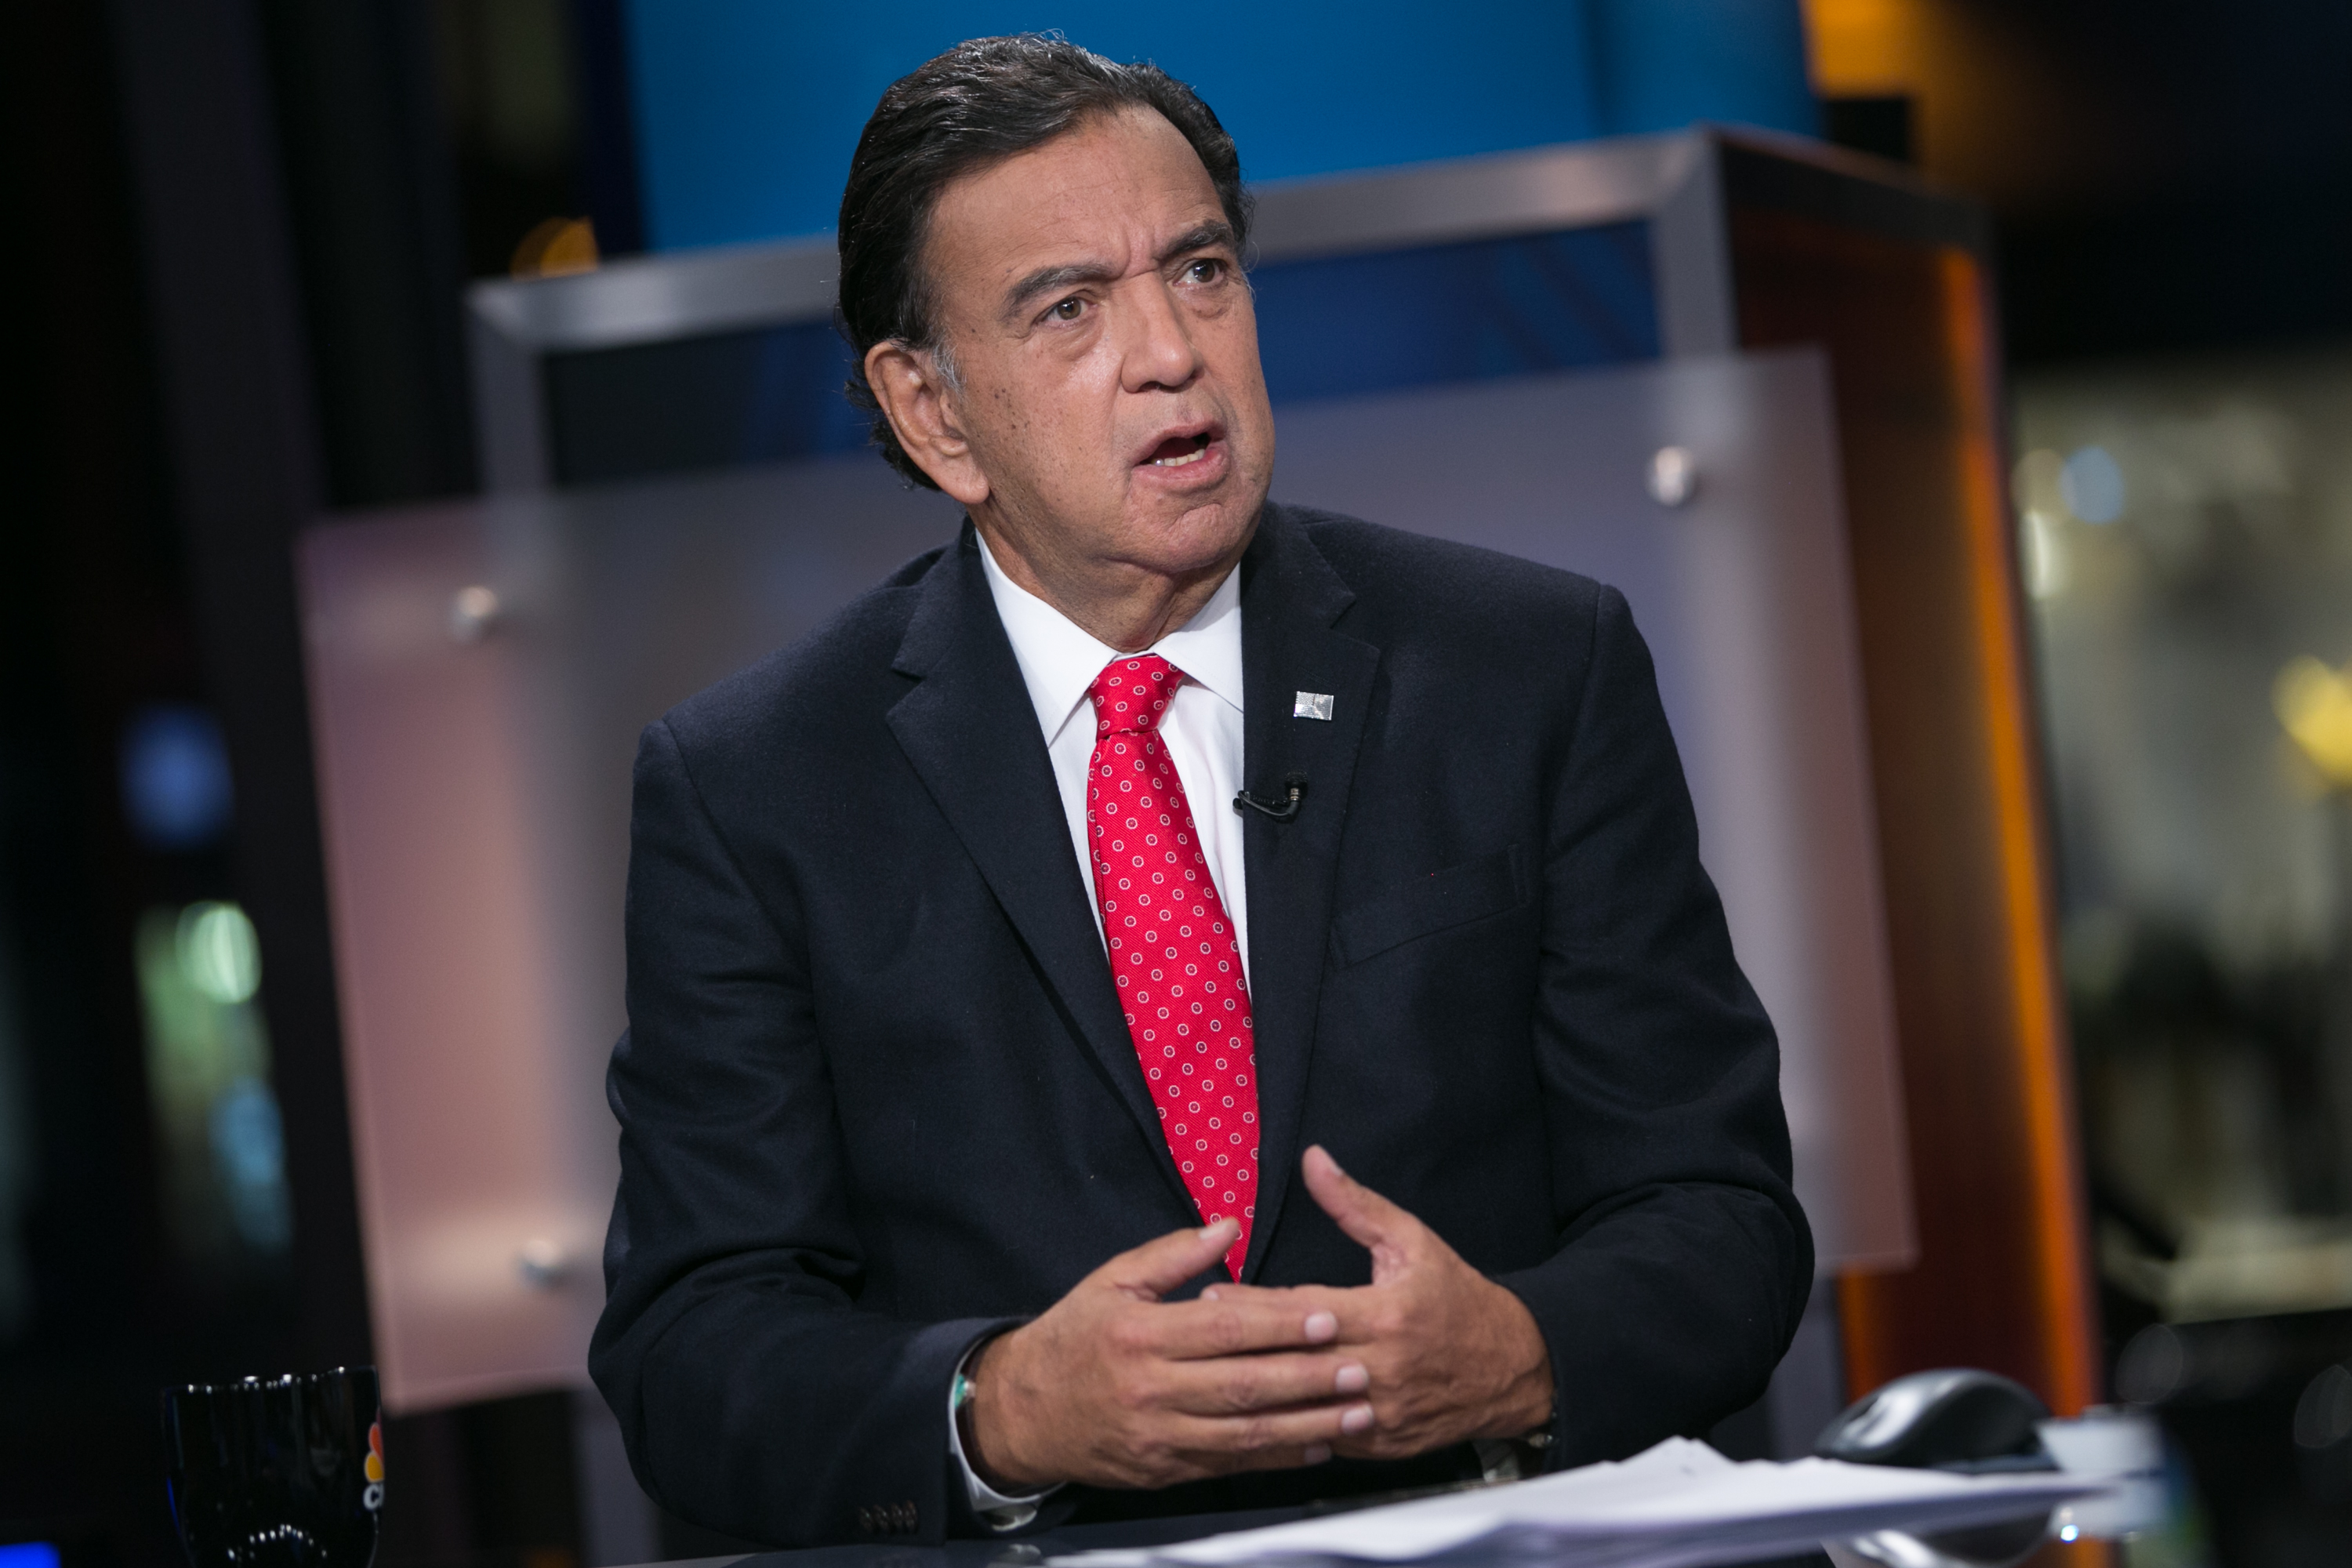 Bill Richardson, former Governor of New Mexico, in an interview on Jan.13, 2015.